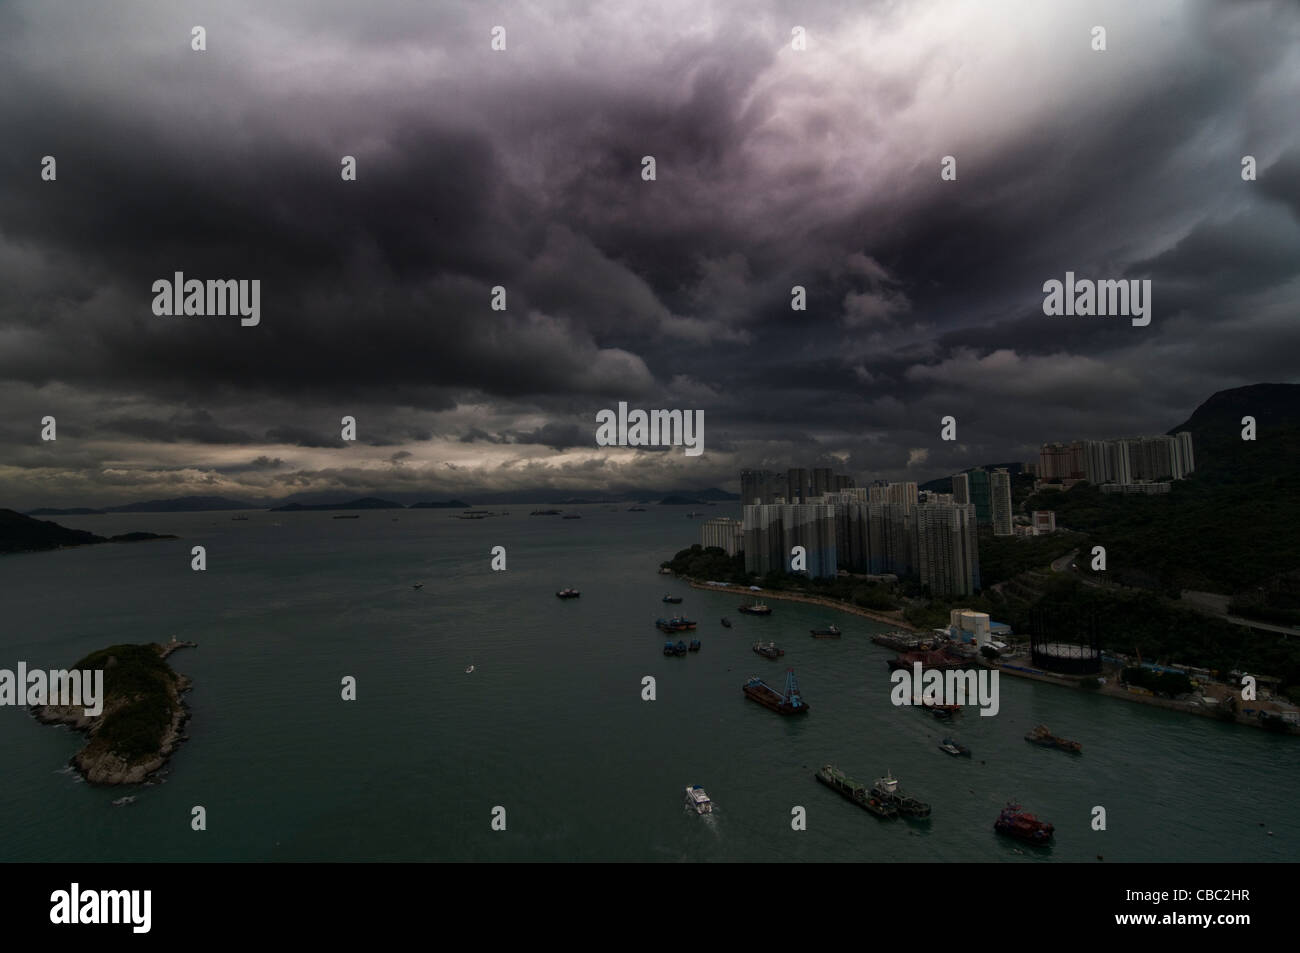 A big storm over the South China Sea. - Stock Image